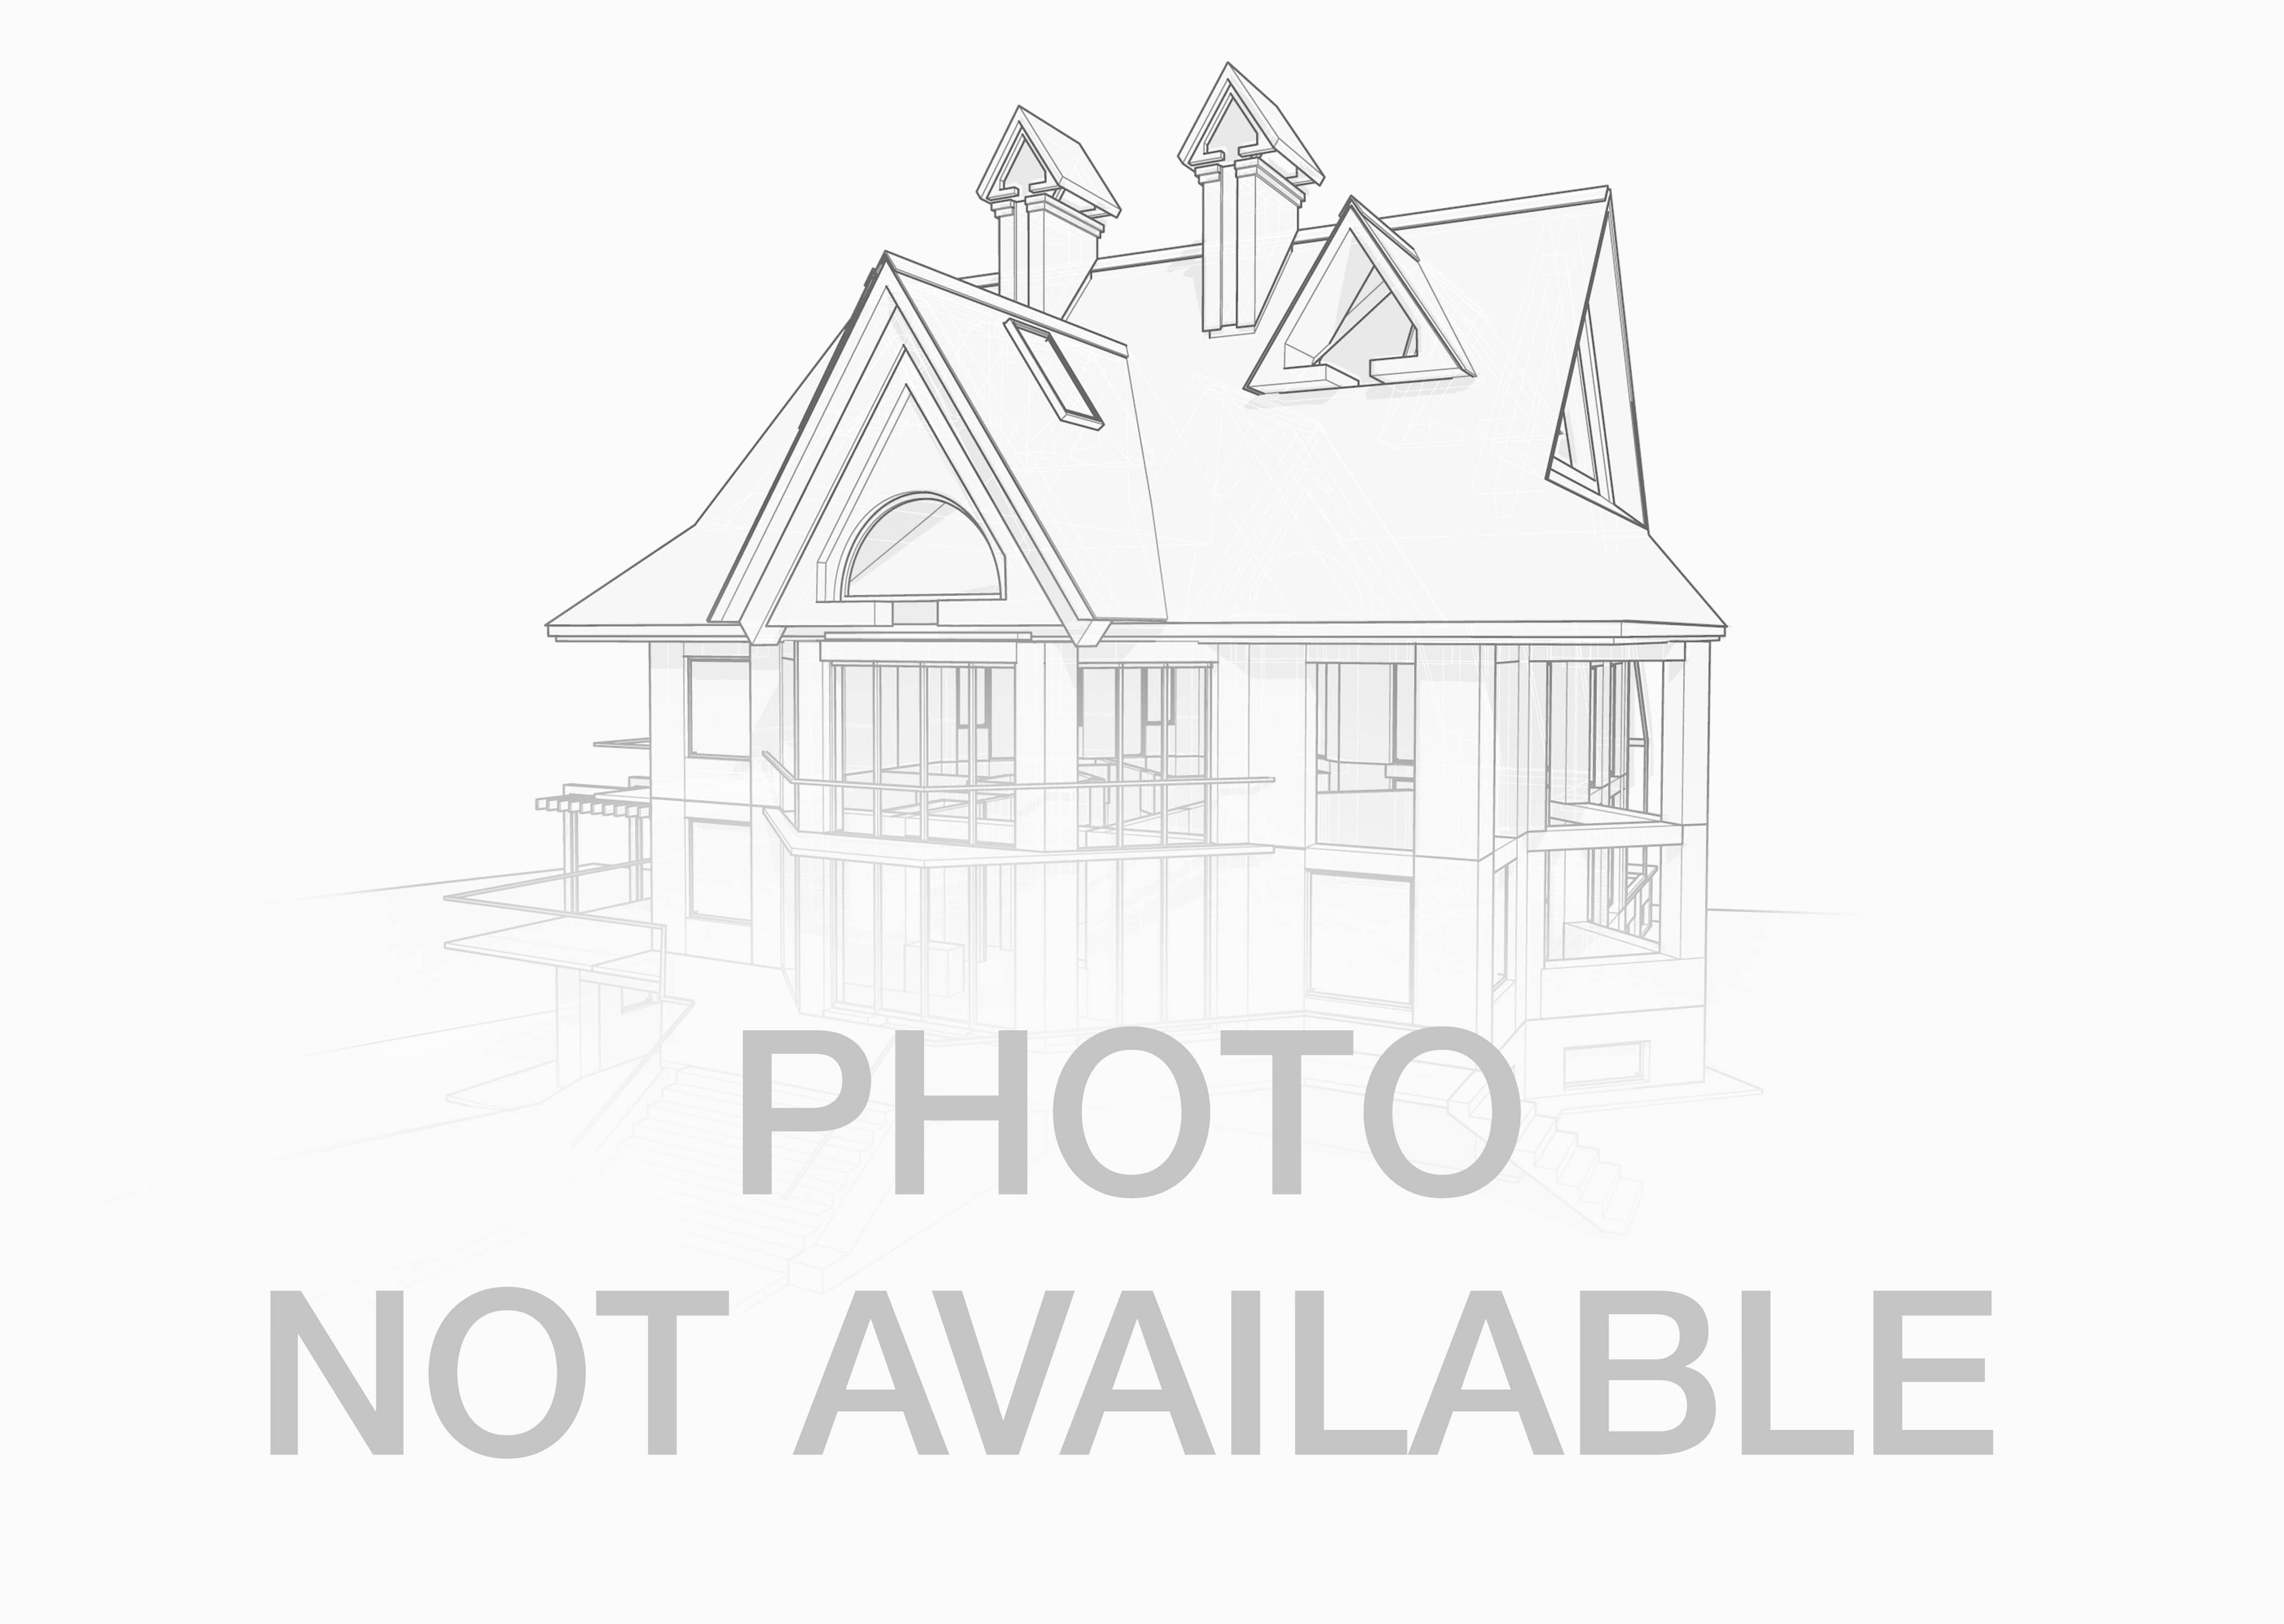 132 Cross Road, Waterford, CT, 06385 - MLS ID#N10234095